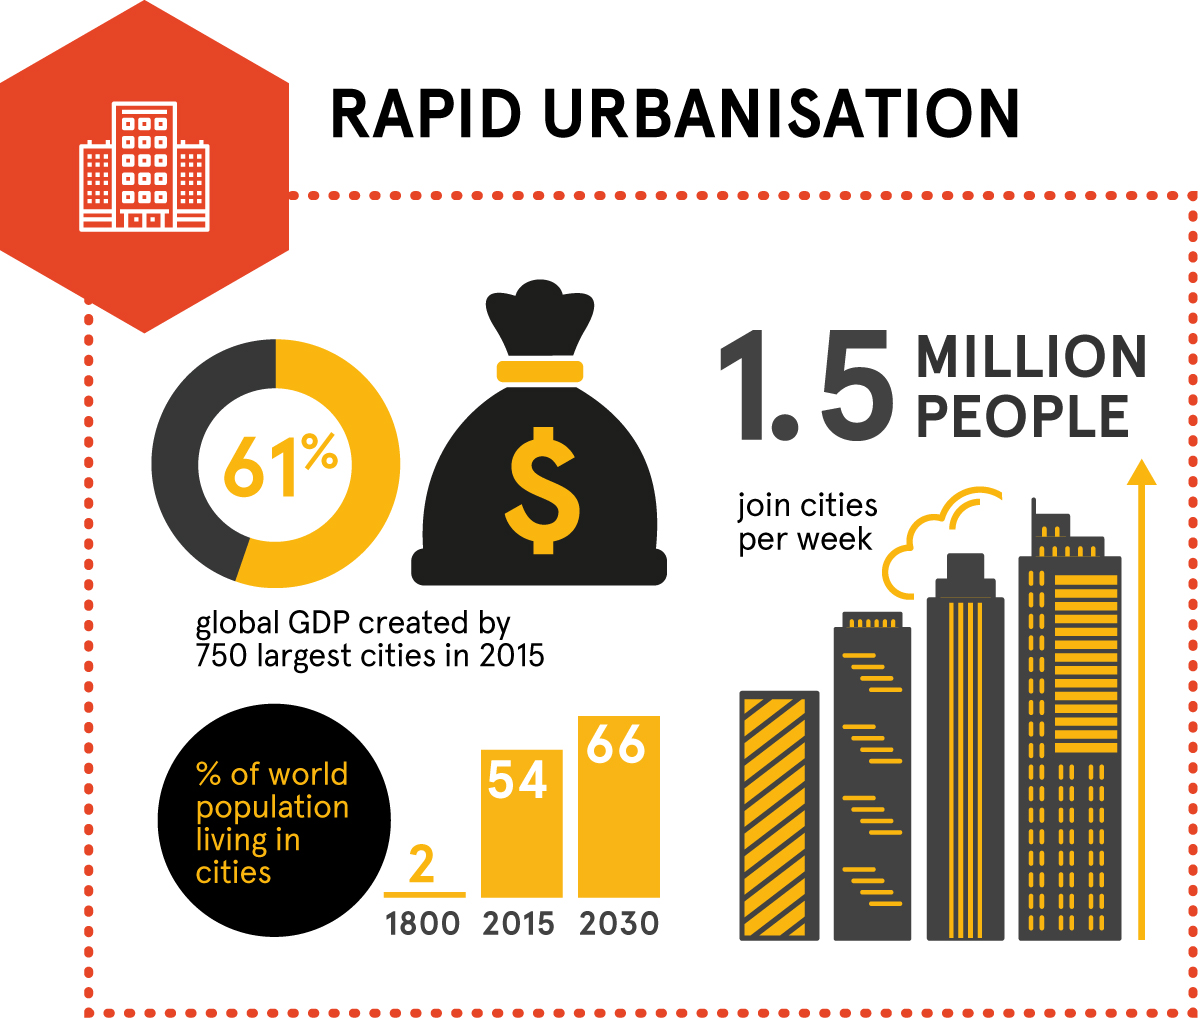 Megatrends – rapid urbanisation. 60% of global GDP created by 750 largest cities in 2015. 1.5 million people join cities per week. Percentage of world population living in cities by year: 1800 (2%), 2015 (54%), 2030 (66%).